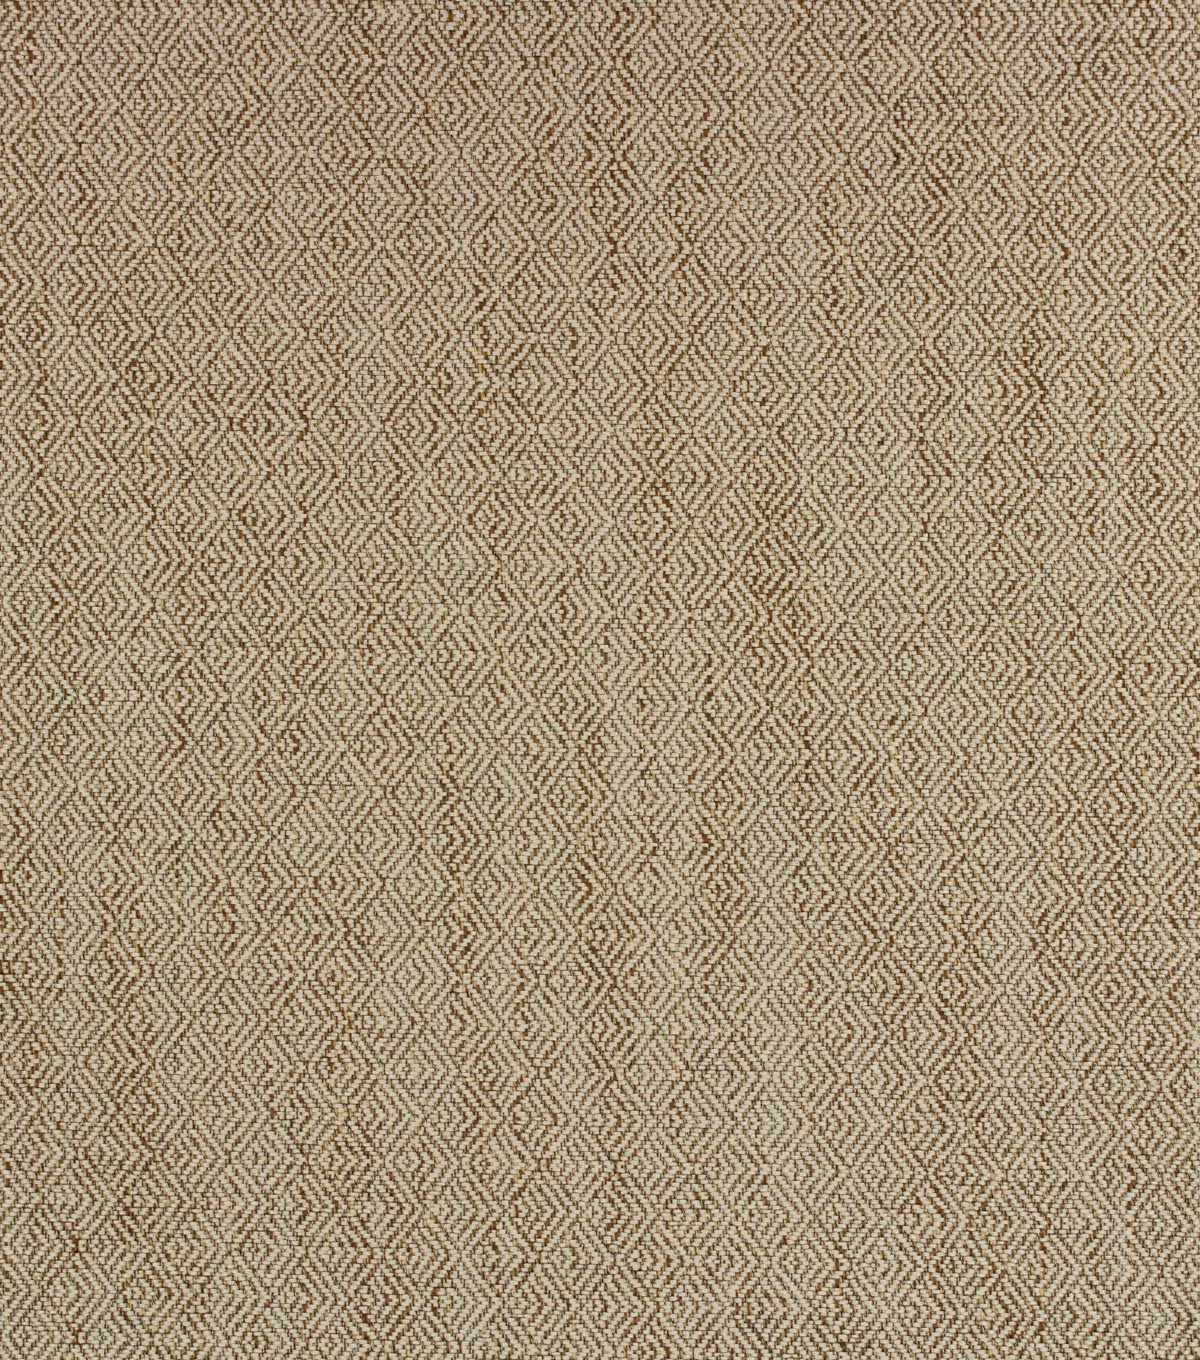 Hudson 43 Multi-Purpose Decor Fabric 60\u0027\u0027-Sand Tanja